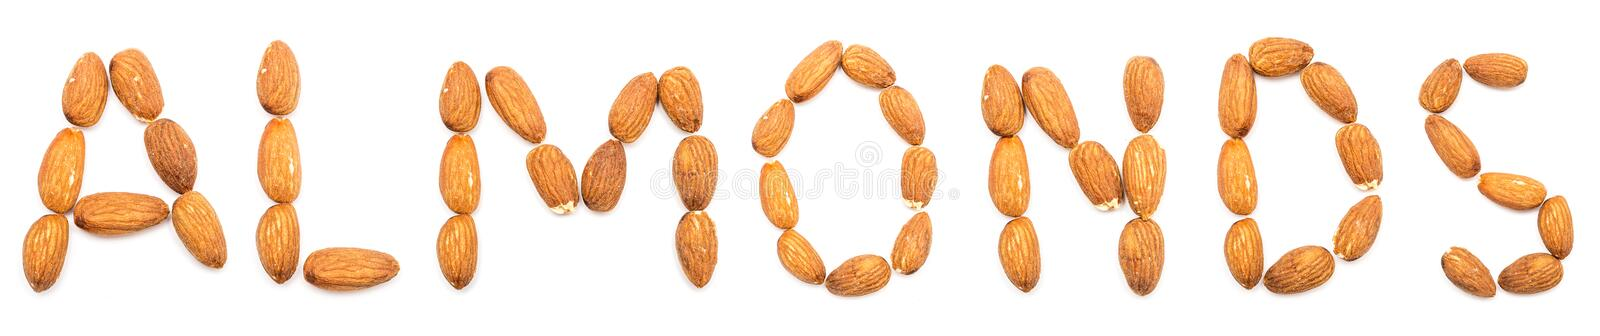 Download Almonds stock image. Image of close, eatable, detail - 25968241